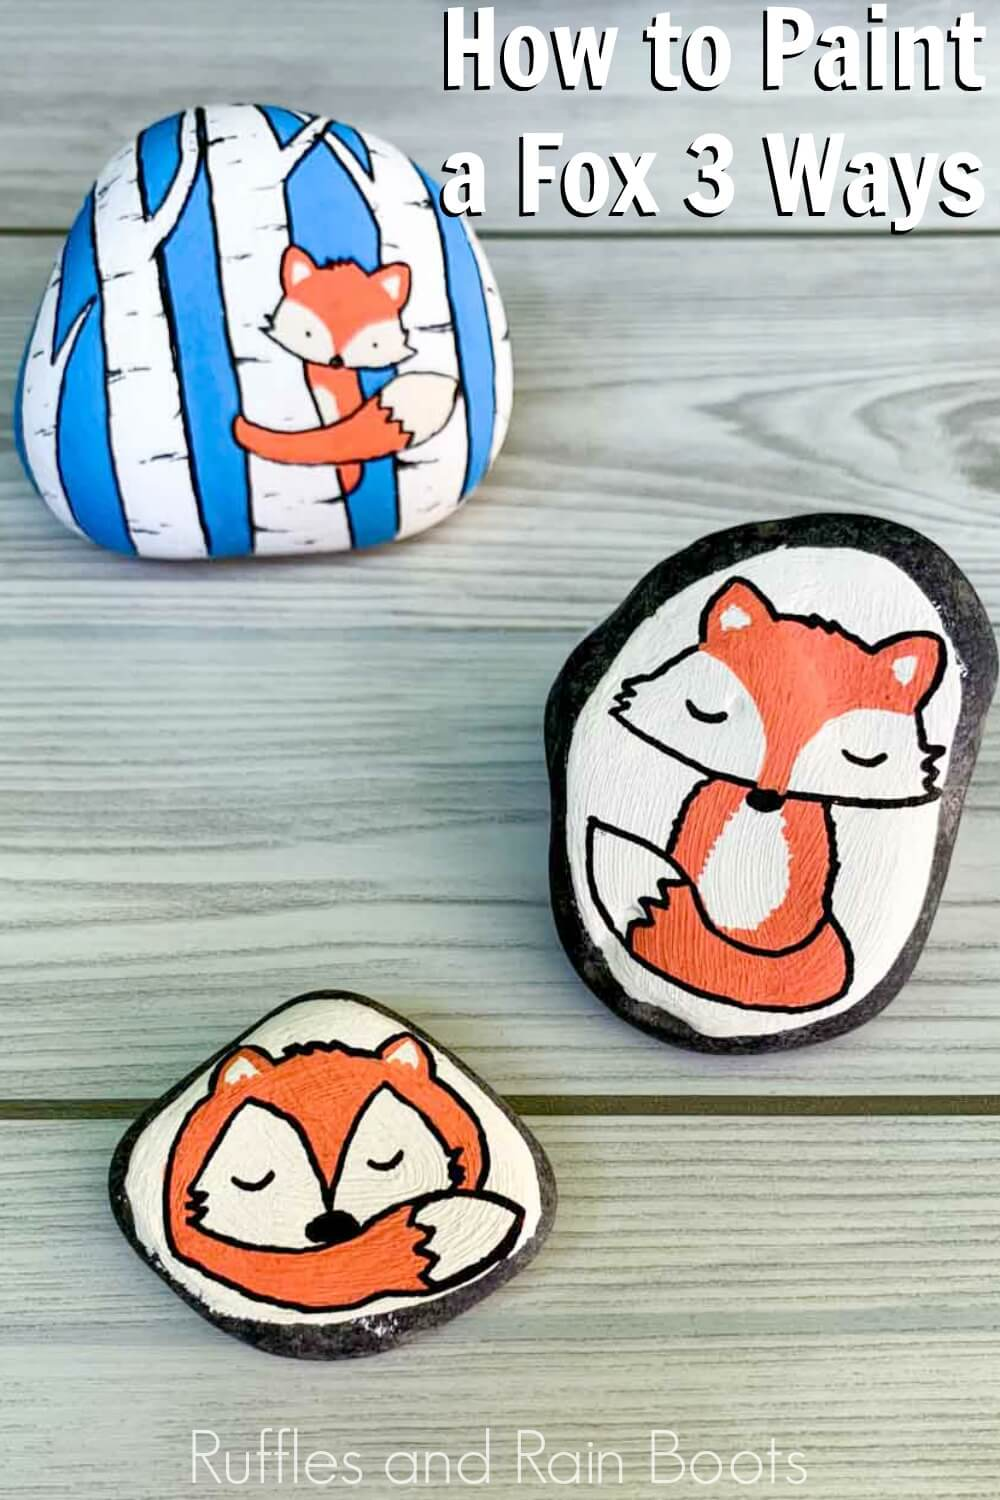 sitting fox rock painting, sleeping fox rock painting, and peek-a-boo fox in the forest rock painting on wood background